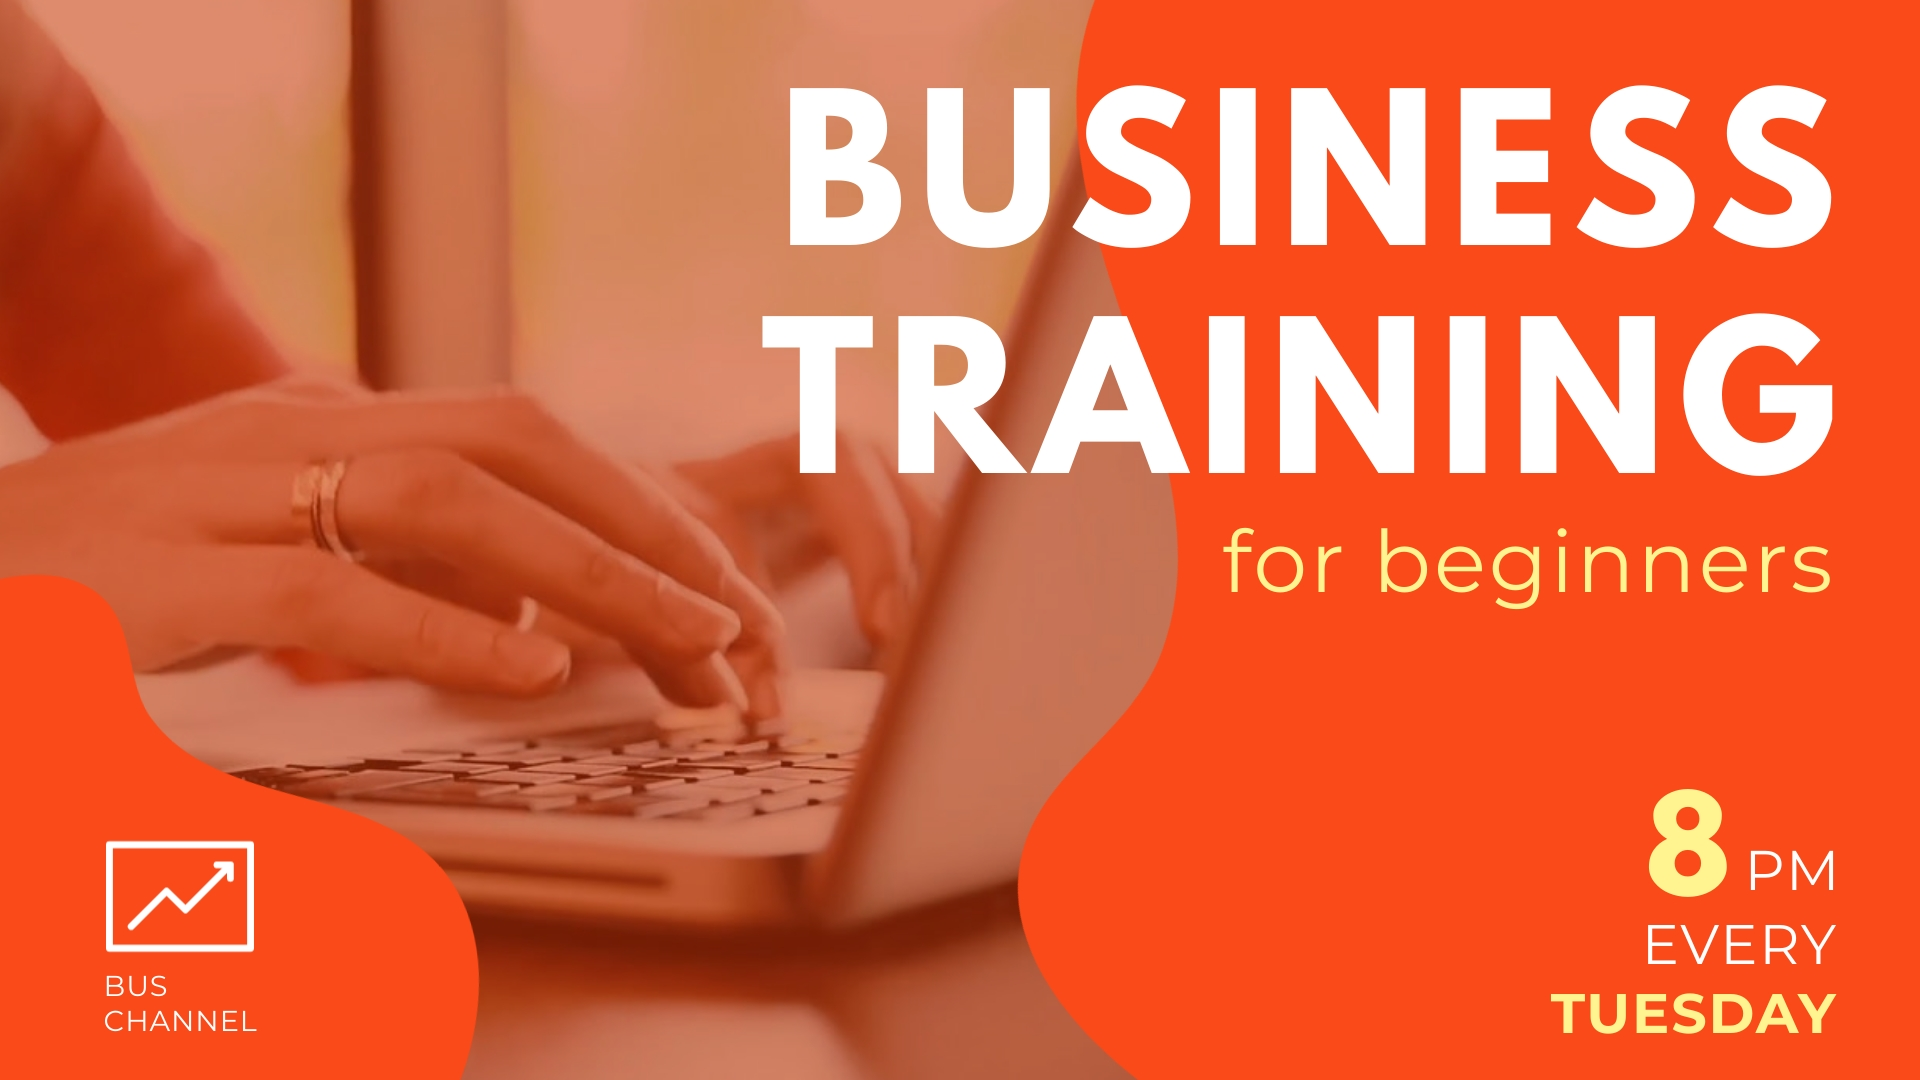 Business Training Intro - Video Template